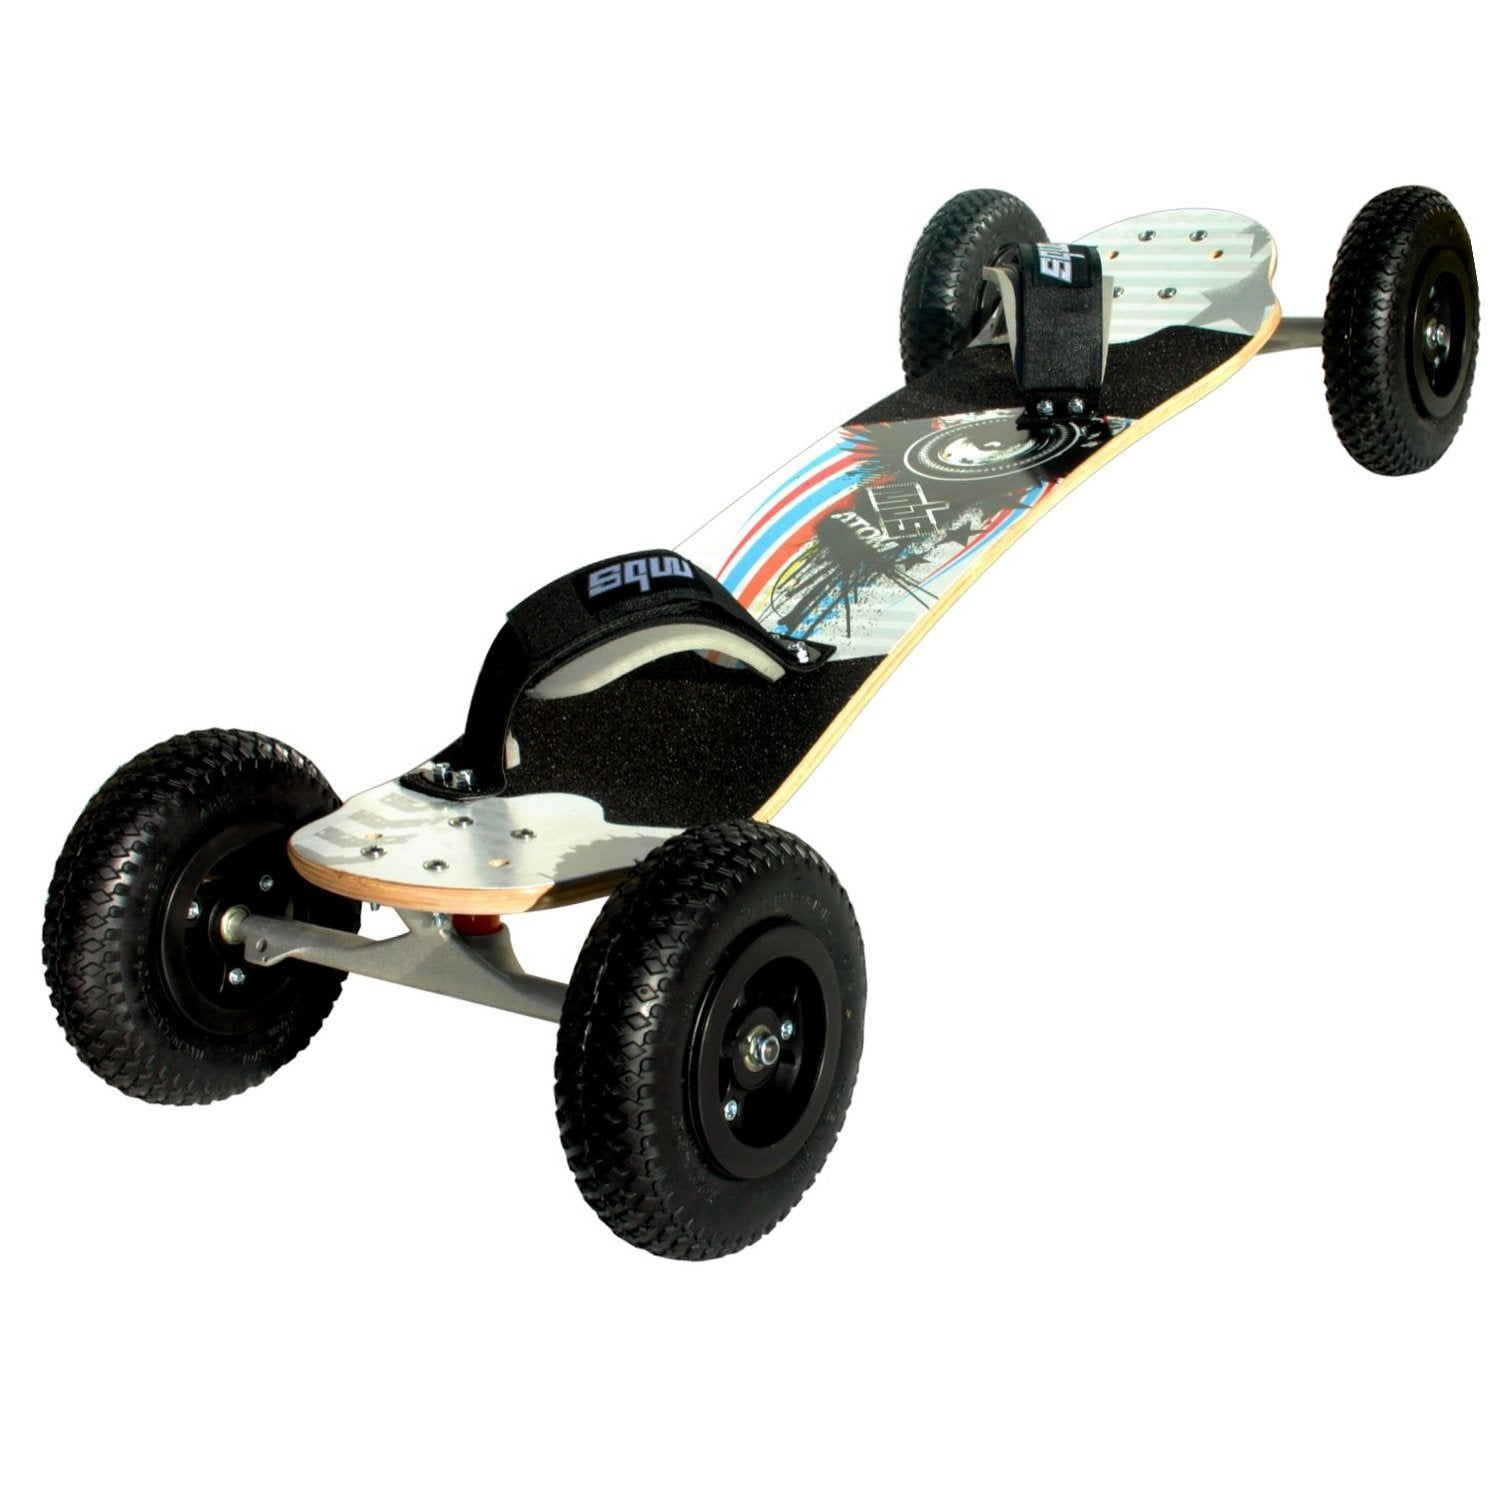 Image of MBS Atom 90 Mountainboard